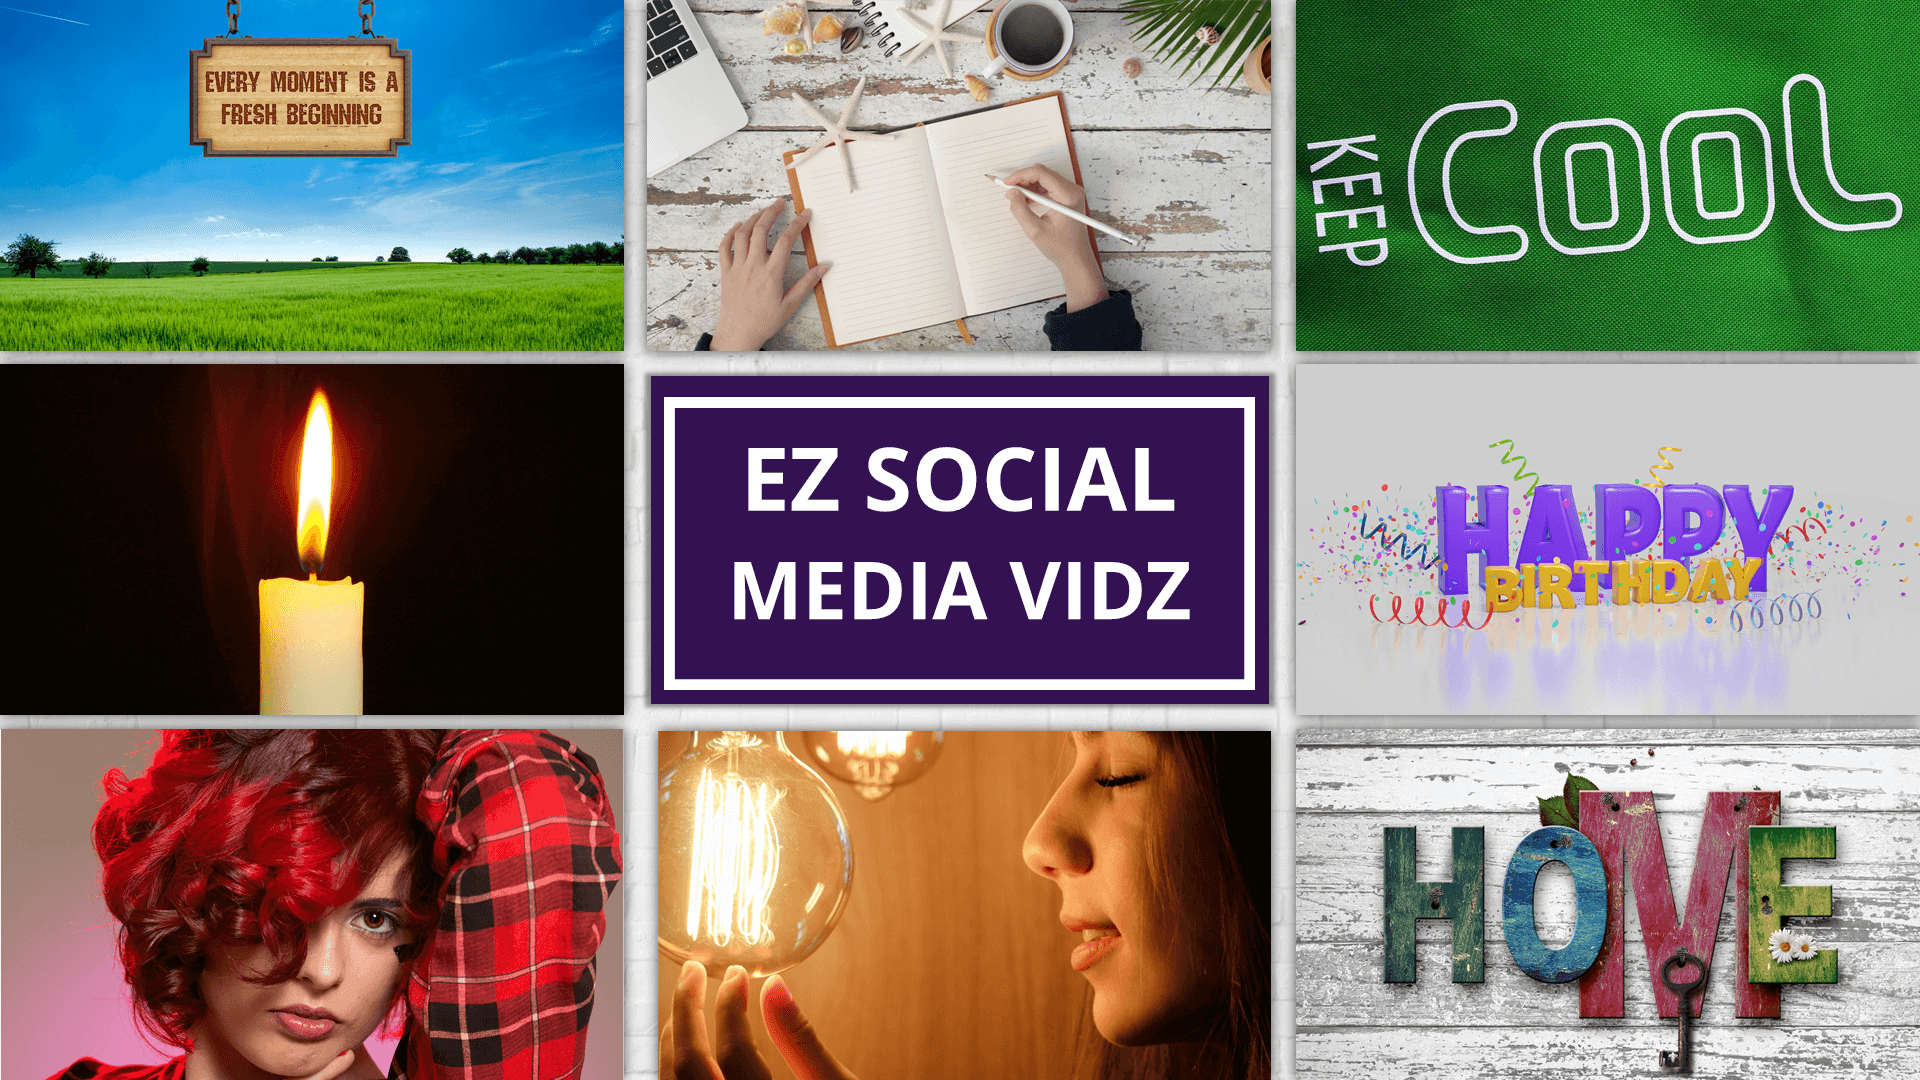 EZ_SocialMedia_Vids_Display6